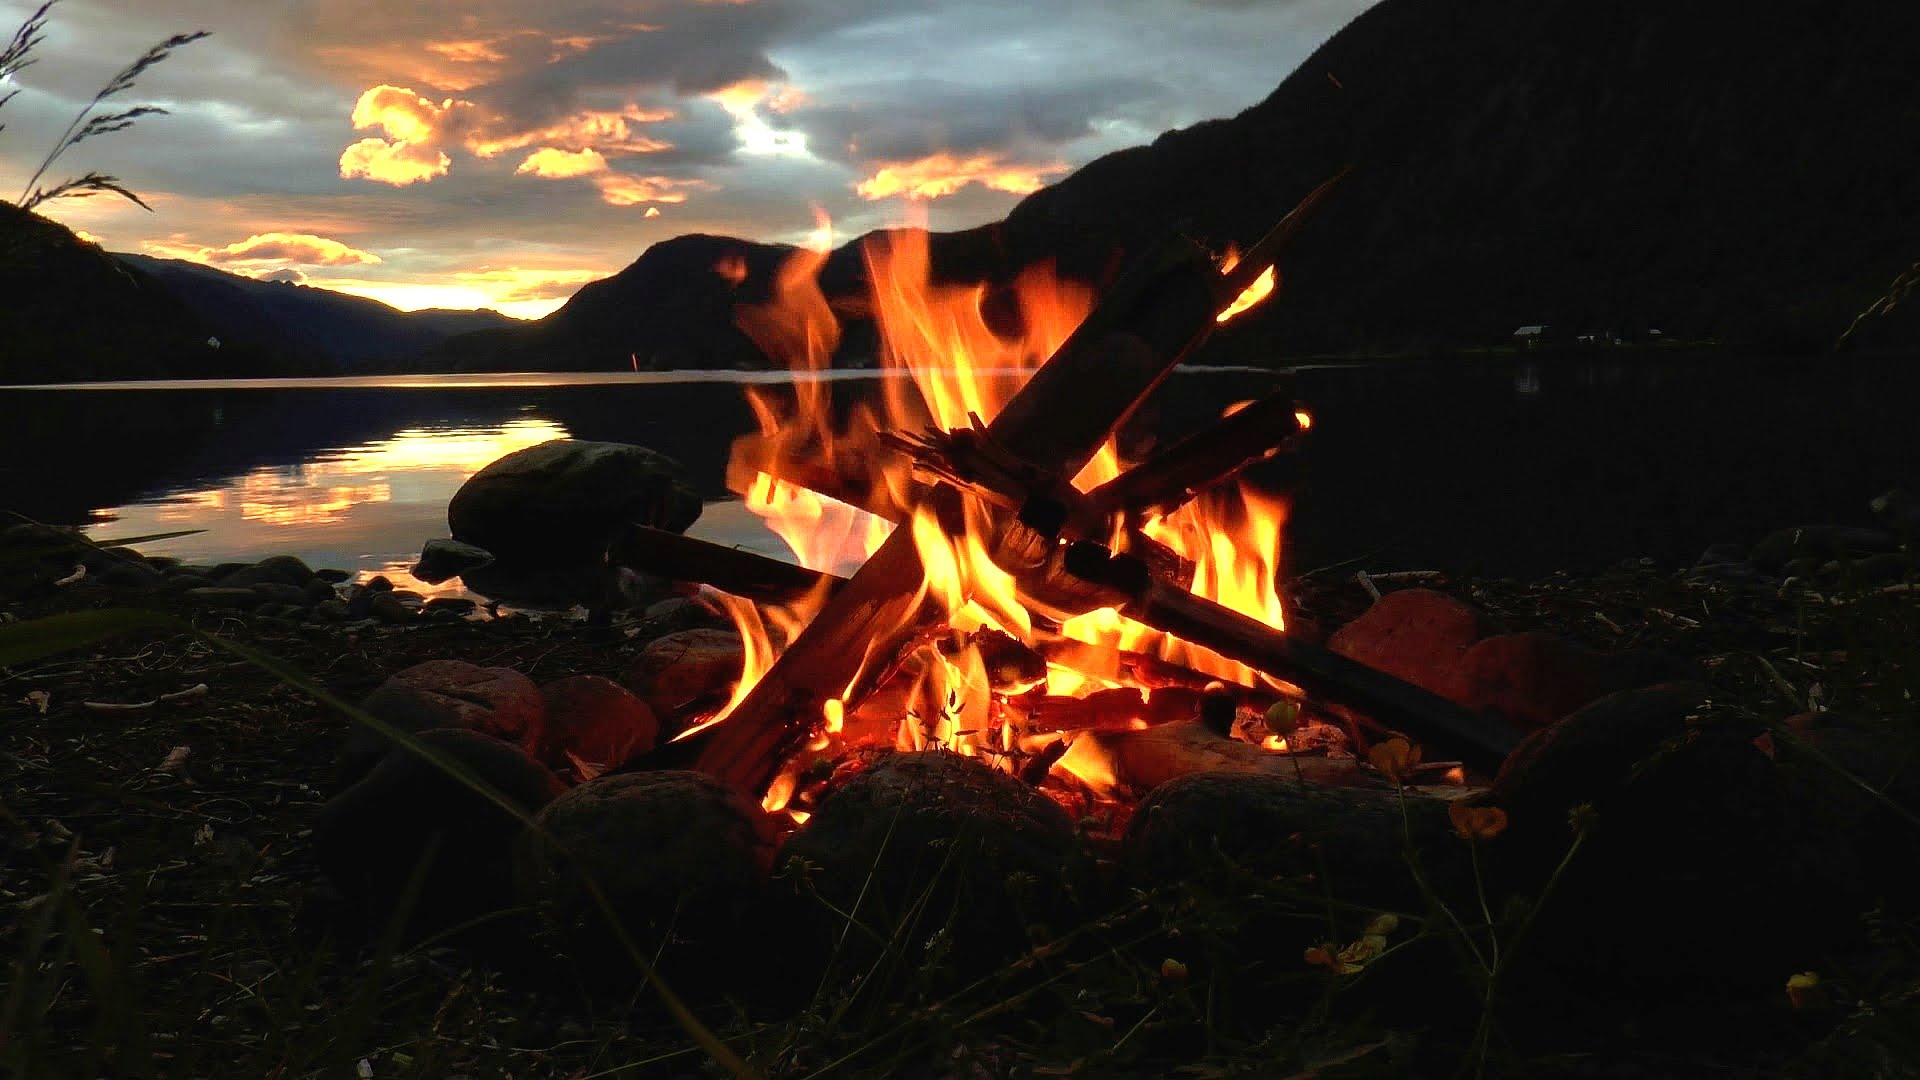 Lakeside Campfire with Relaxing Nature Night Sounds (HD) - YouTube